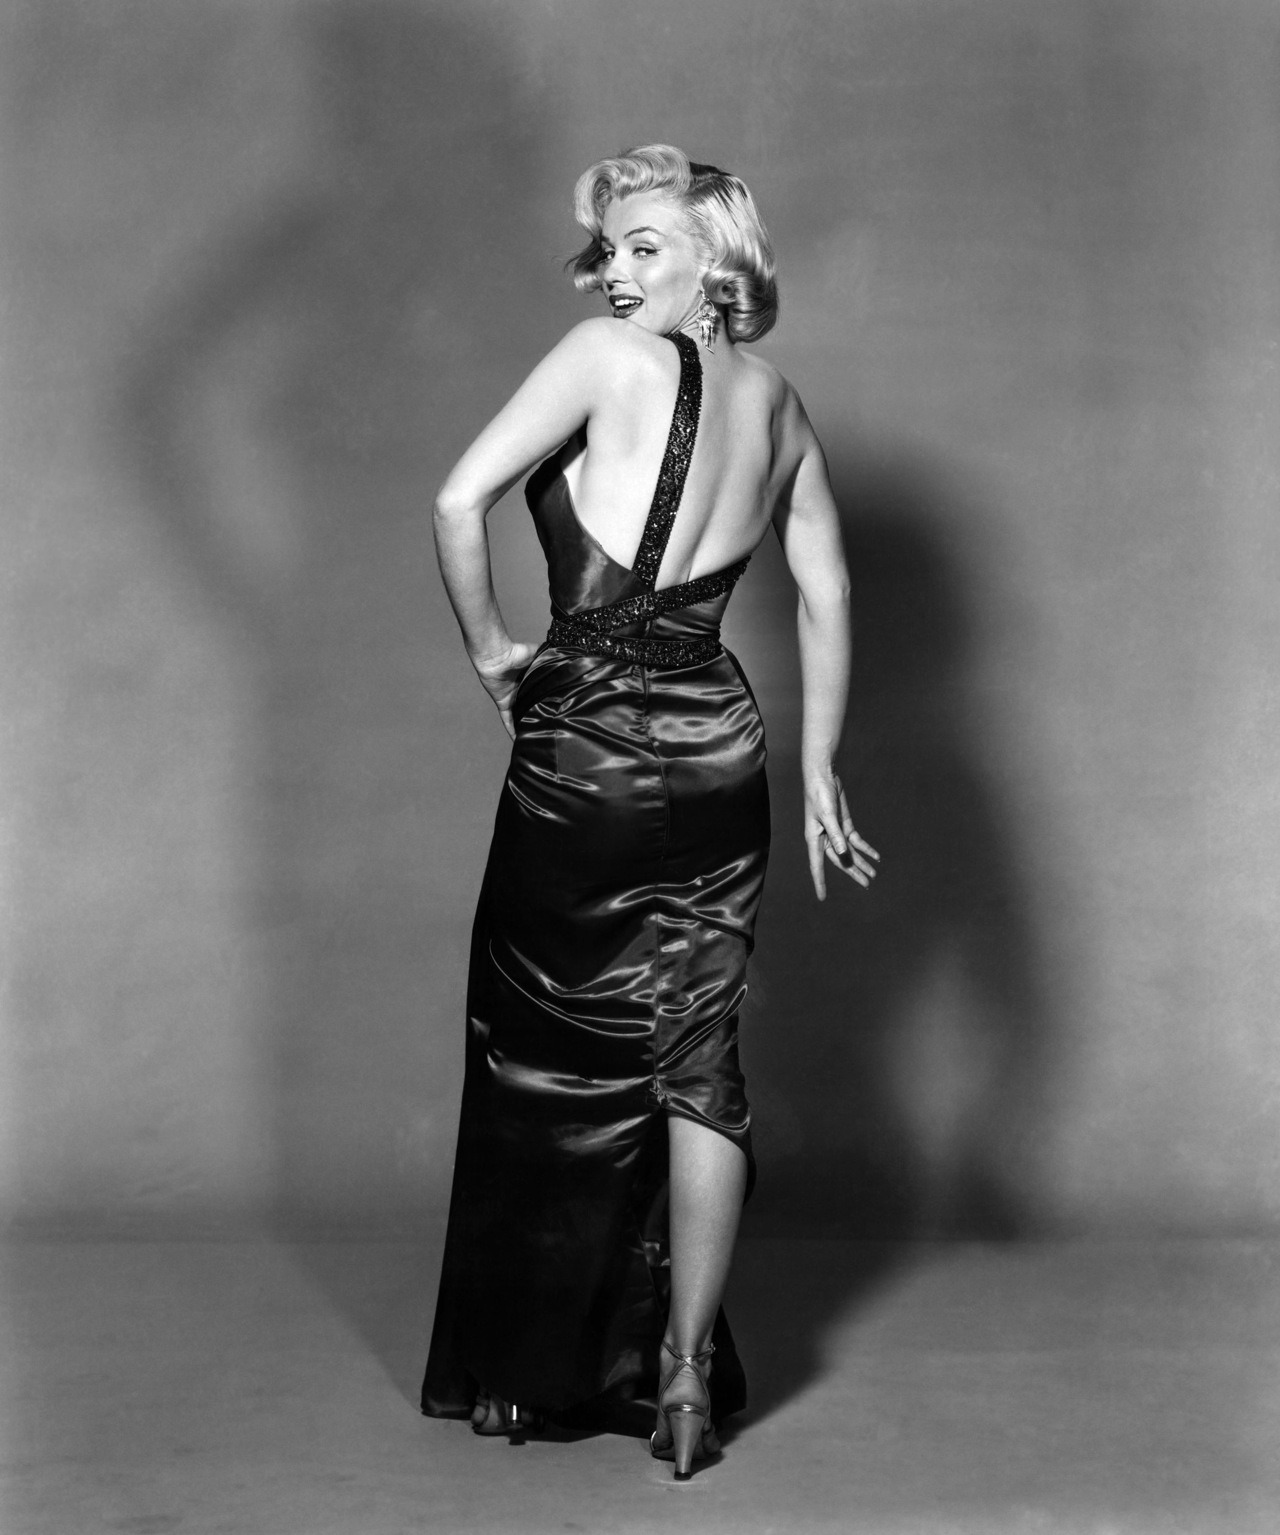 "withlovemarilynmonroe:  1953: Marilyn by Frank Worth.  Ruote LatinaRuote Italia Il portale ospita aziende, uomini e piloti e vuol essere un luogo di incontro tra quanti vivono le ""ruote"", qualunque esse siano, con passione, consci del valore che l'invenzione della ruota ha rappresentato per l'umanità tutta. Seguiteci con attenzione, non ve ne pentirete. Wheels Latina      Wheels  Italy The portal hosts companies, pilots and men and wishes to become a meeting place between those who live the ""wheels"", whatever they are, with passion, conscious of the value that the invention of the wheel has been for all of humanity. Follow carefully, you will not regret. Please Follow: http://www.ruotelatina.com ruotelatina@gmail.com  GOOD EARTH http://www.ferdinandporsche.net http://ruoteitalia-blog.tumblr.com/archive http://leosimonelli.tumblr.com/archive http://fabiodamiani.tumblr.com/archive http://italiaunoweb.tumblr.com/archive http://rossoferrari.tumblr.com/archive http://mitomotori.tumblr.com/archive http://motodays-2012.tumblr.com/archive  Pianeta RuoteWheels Planet"